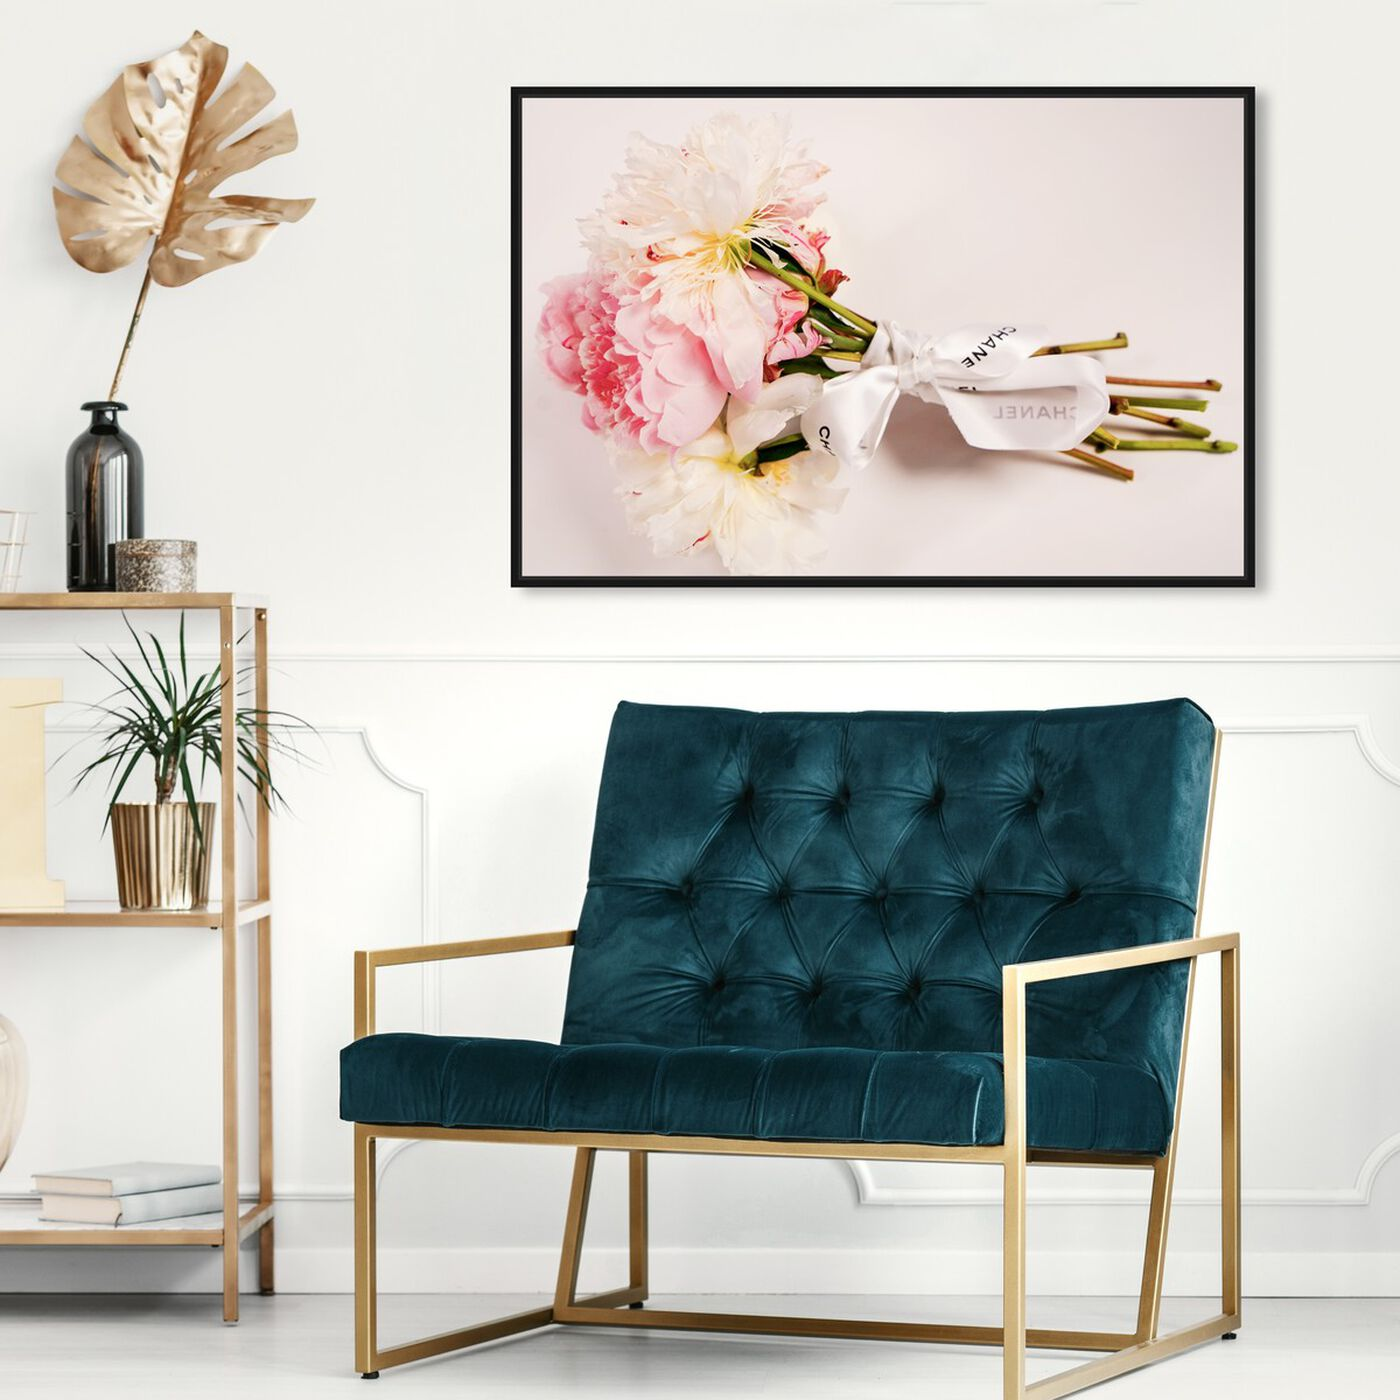 Hanging view of Bouquet of Peonies featuring floral and botanical and florals art.